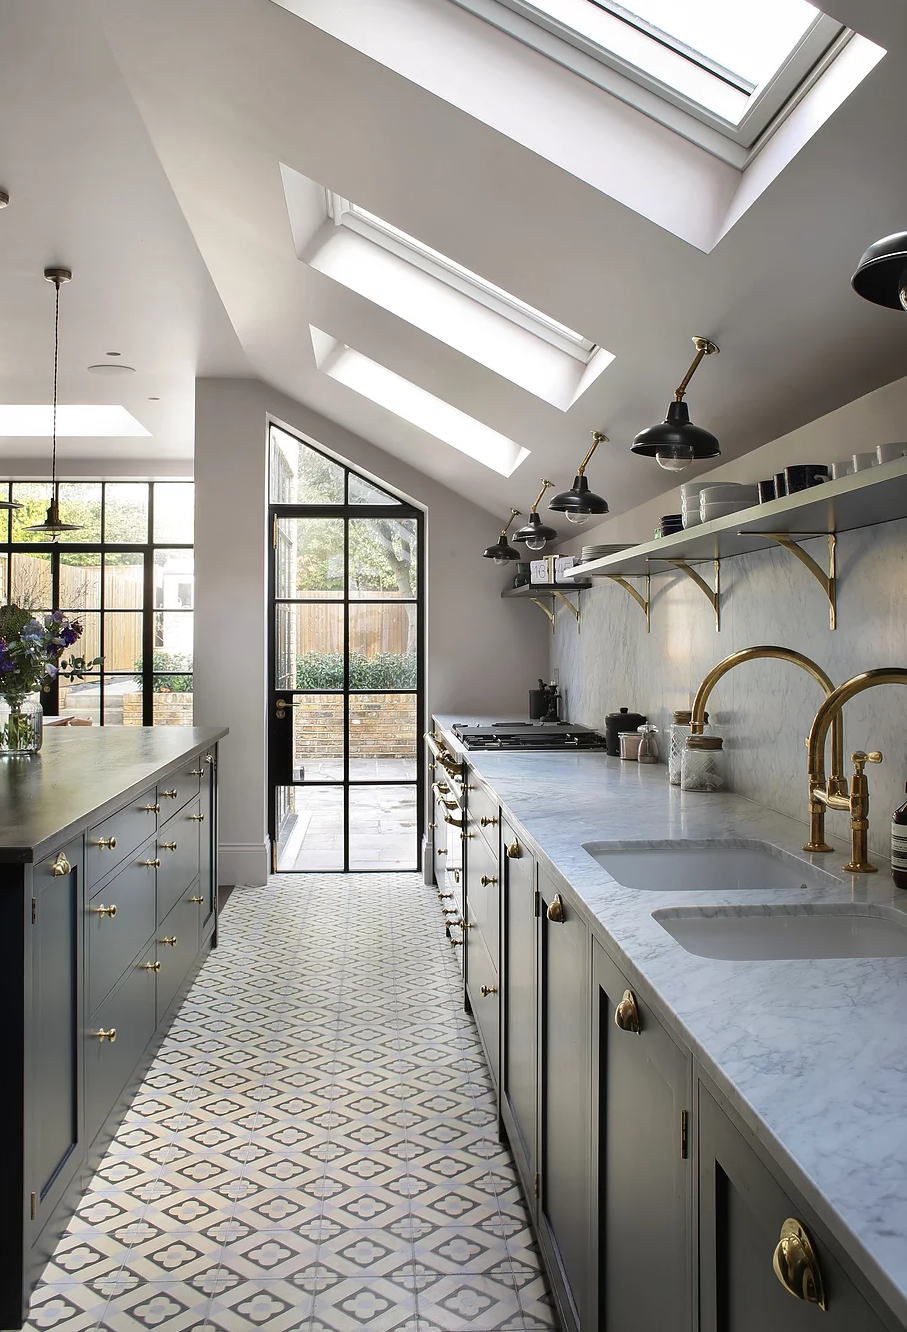 1553970809 359 amazing kitchen design with touches of gold - Amazing Kitchen Design With Touches Of Gold